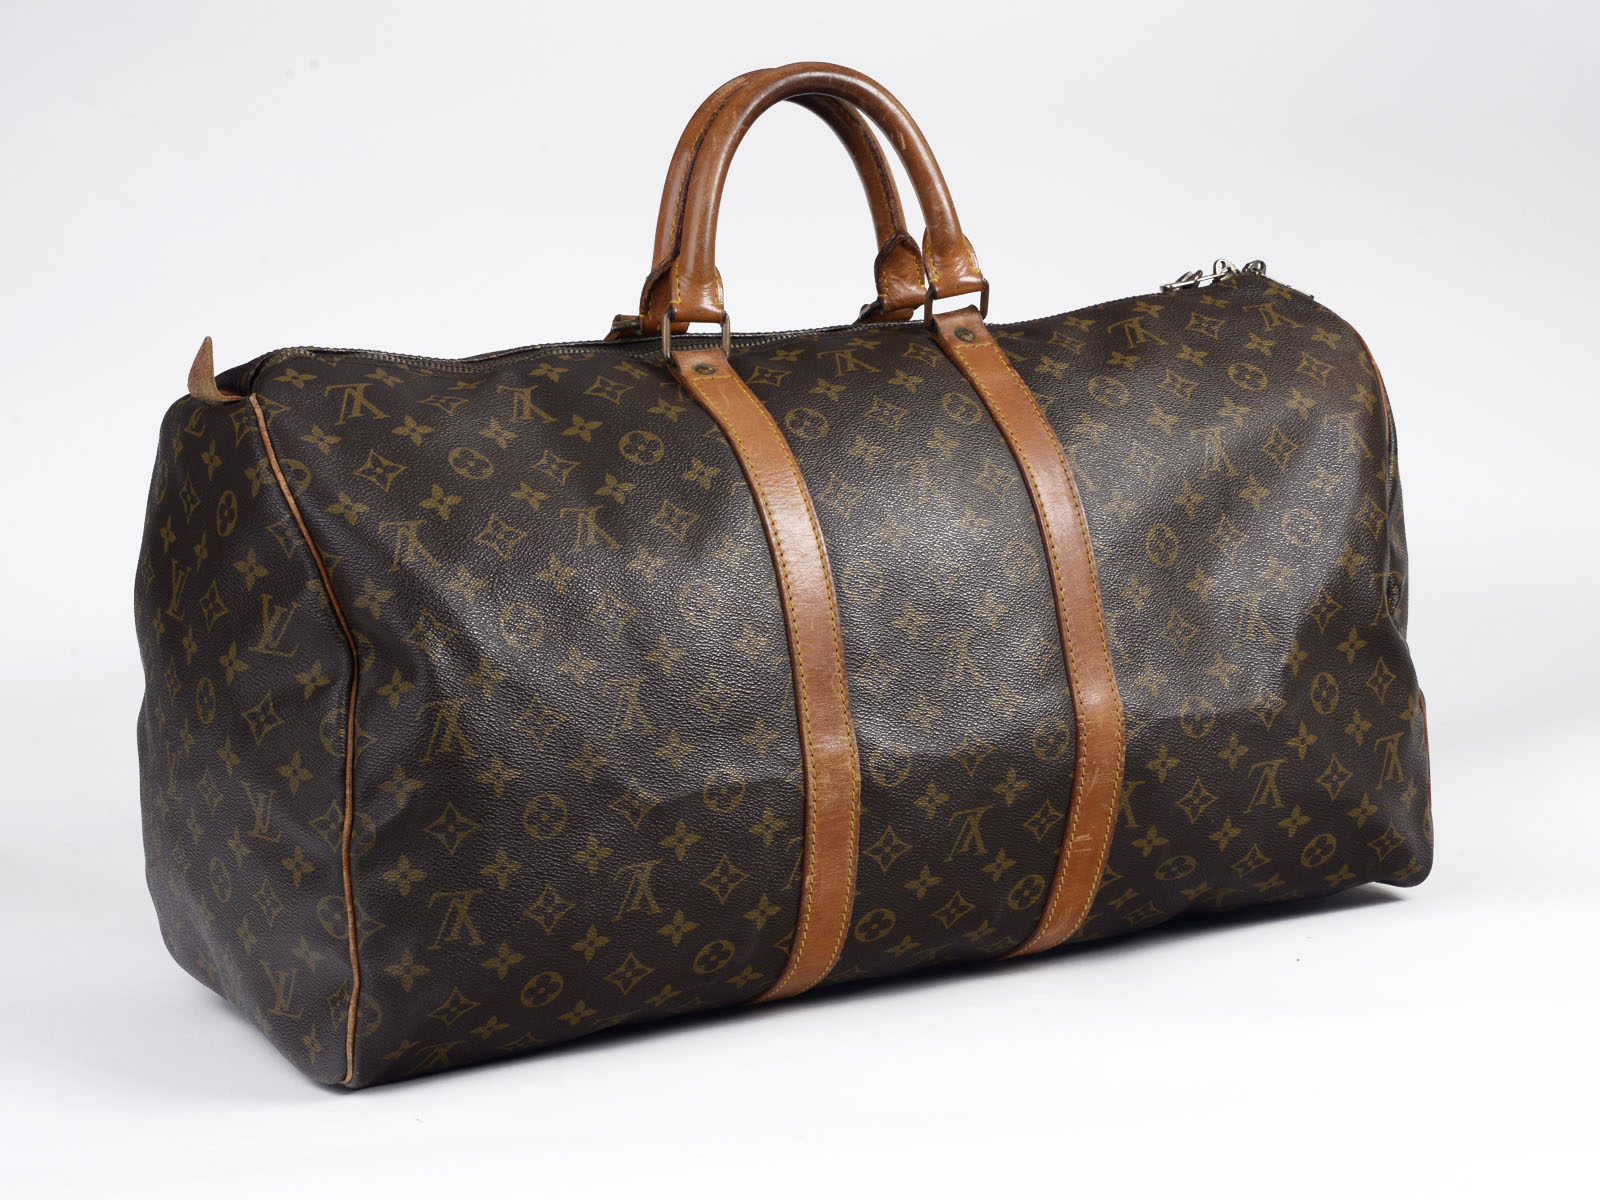 Louis Vuitton Monogram Suitcase 55cm jBOA5VE